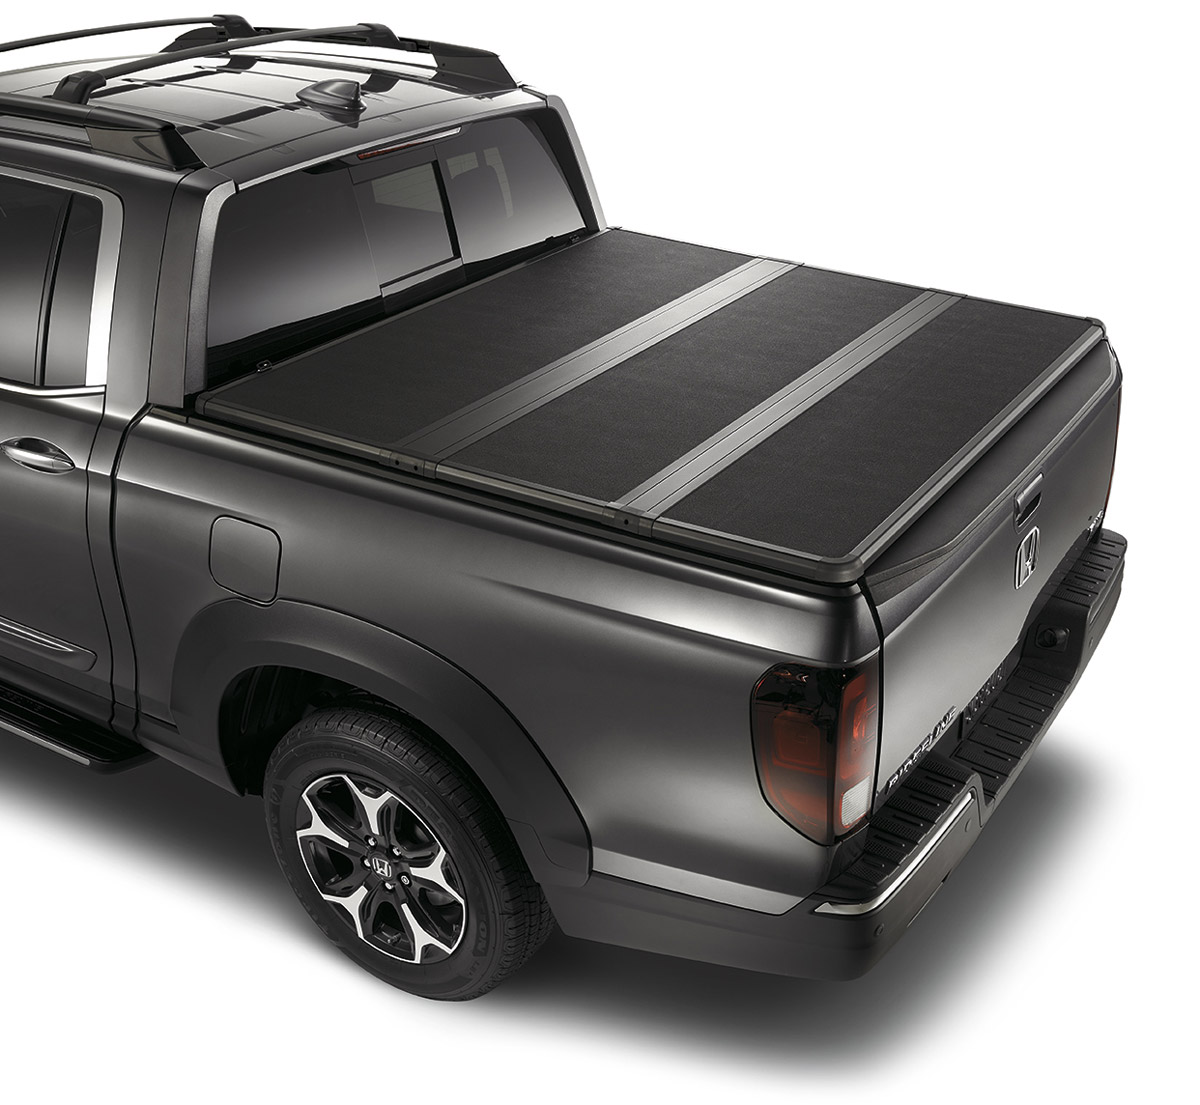 2017 2019 Honda Ridgeline Hard Tonneau Cover Includes